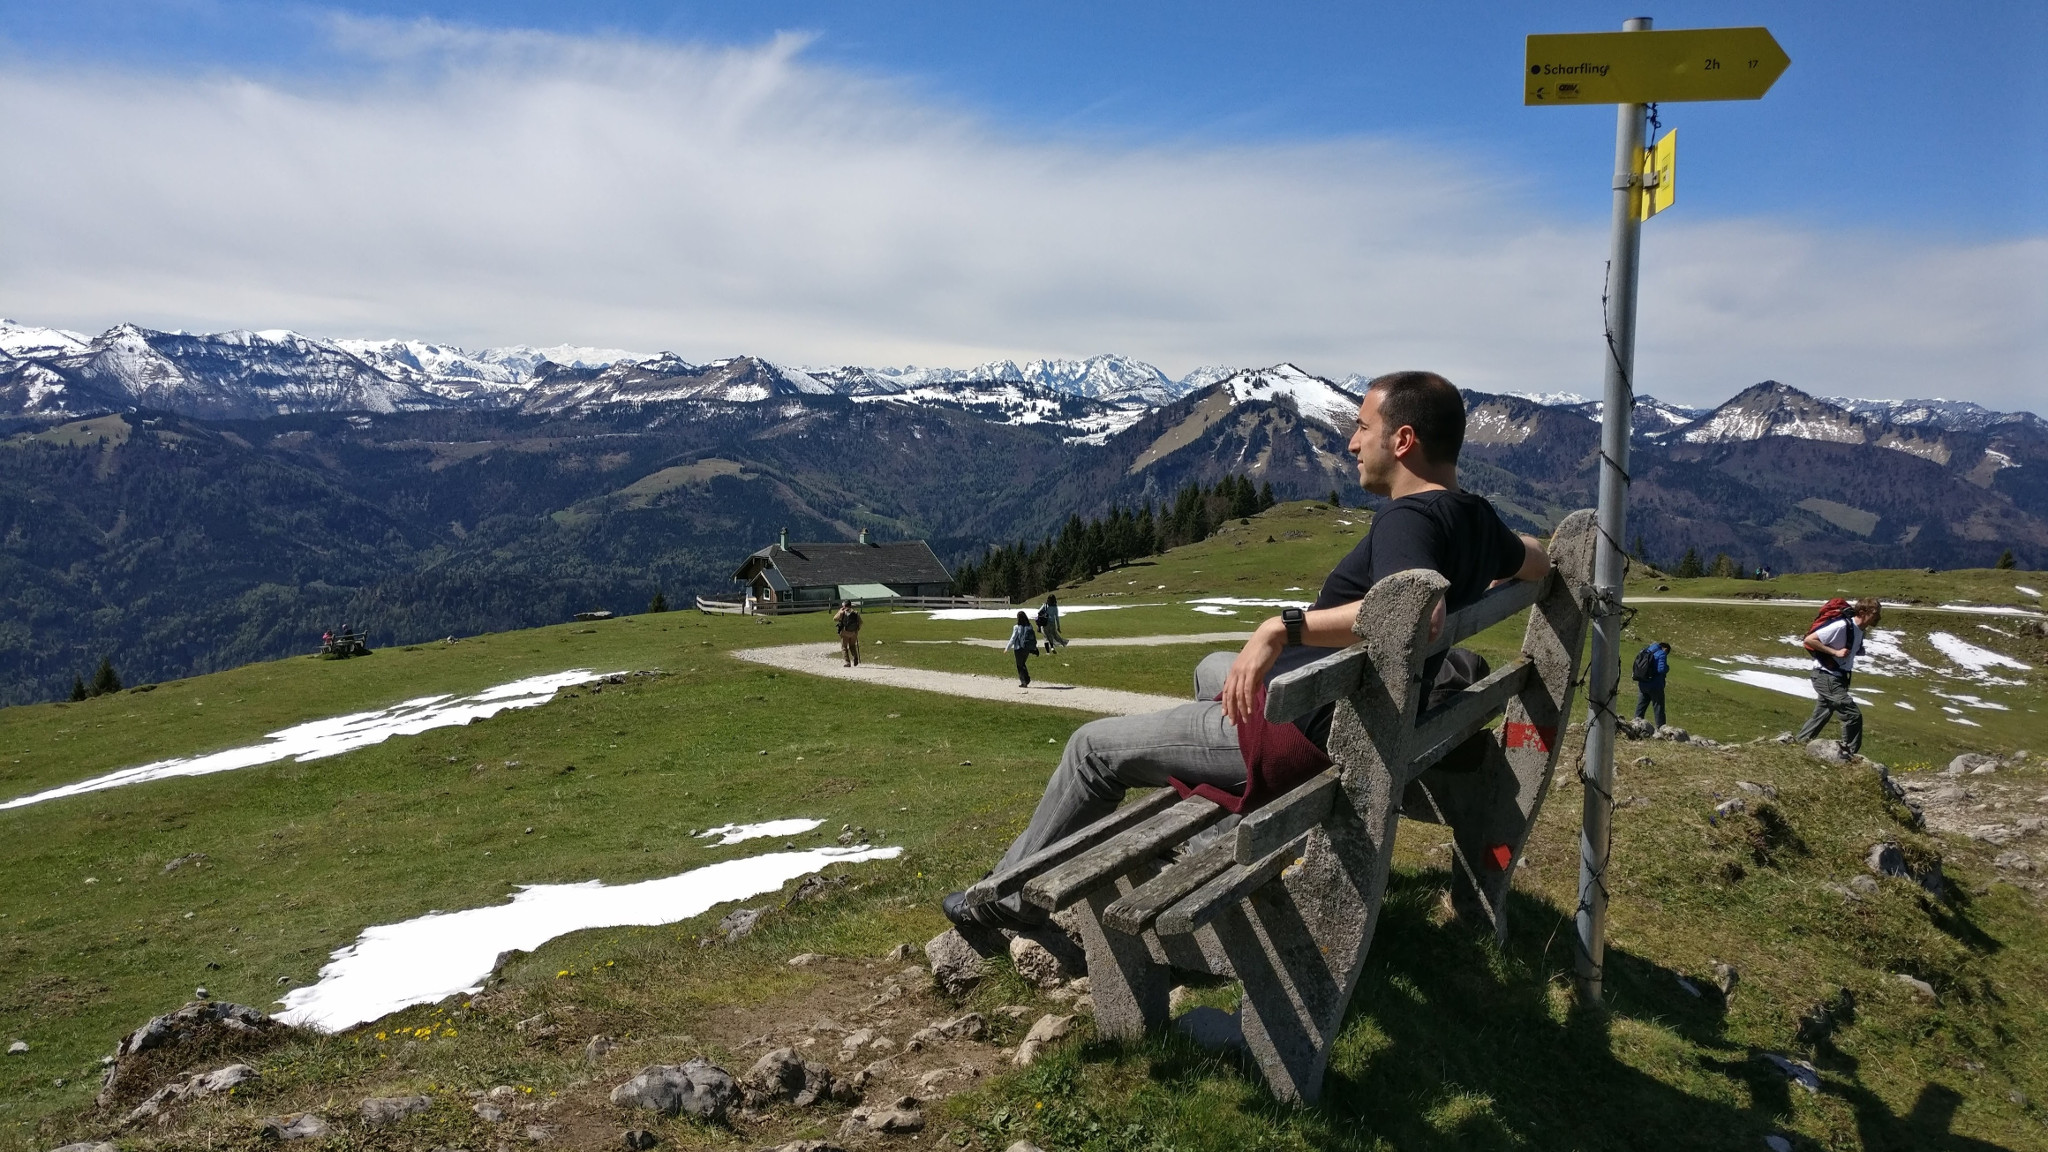 Staring into the endless mountains at Schafbergalpe